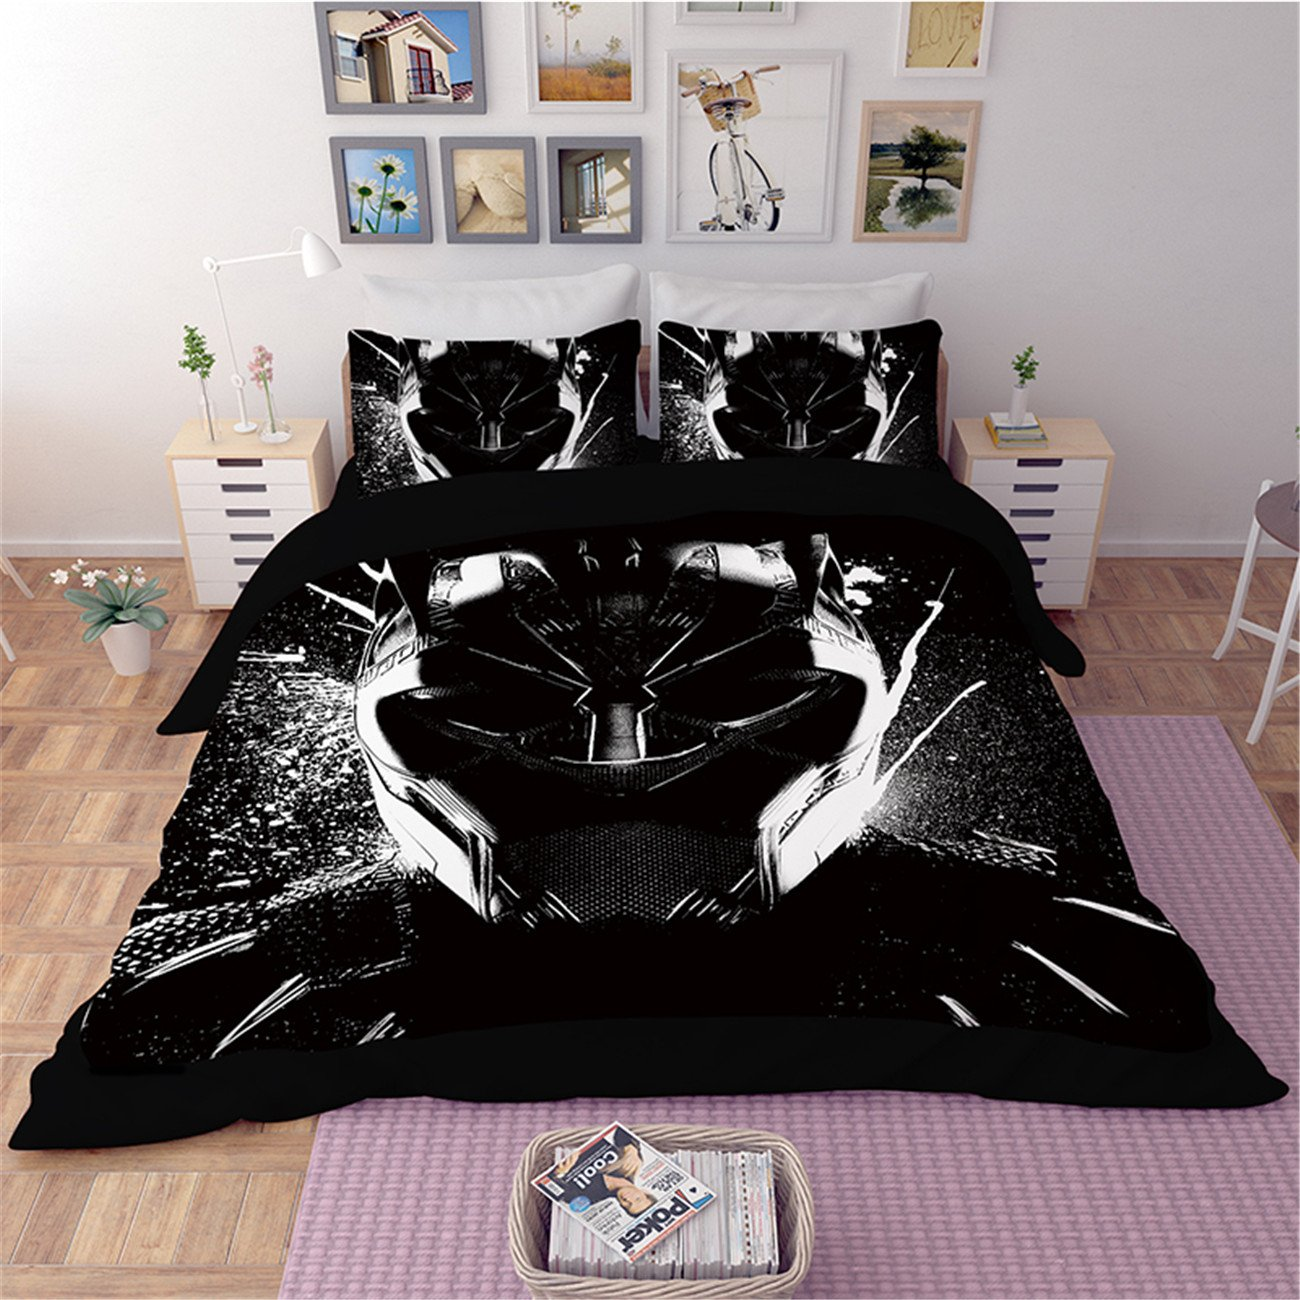 NOOS 3D Black Panther Duvet cover Set New Cartoon kids bedding set 3PC Soft 100% microfiber Childrens Marvel Cat Superhero Themed Action Movie Bed Set Twin Full Queen King Size